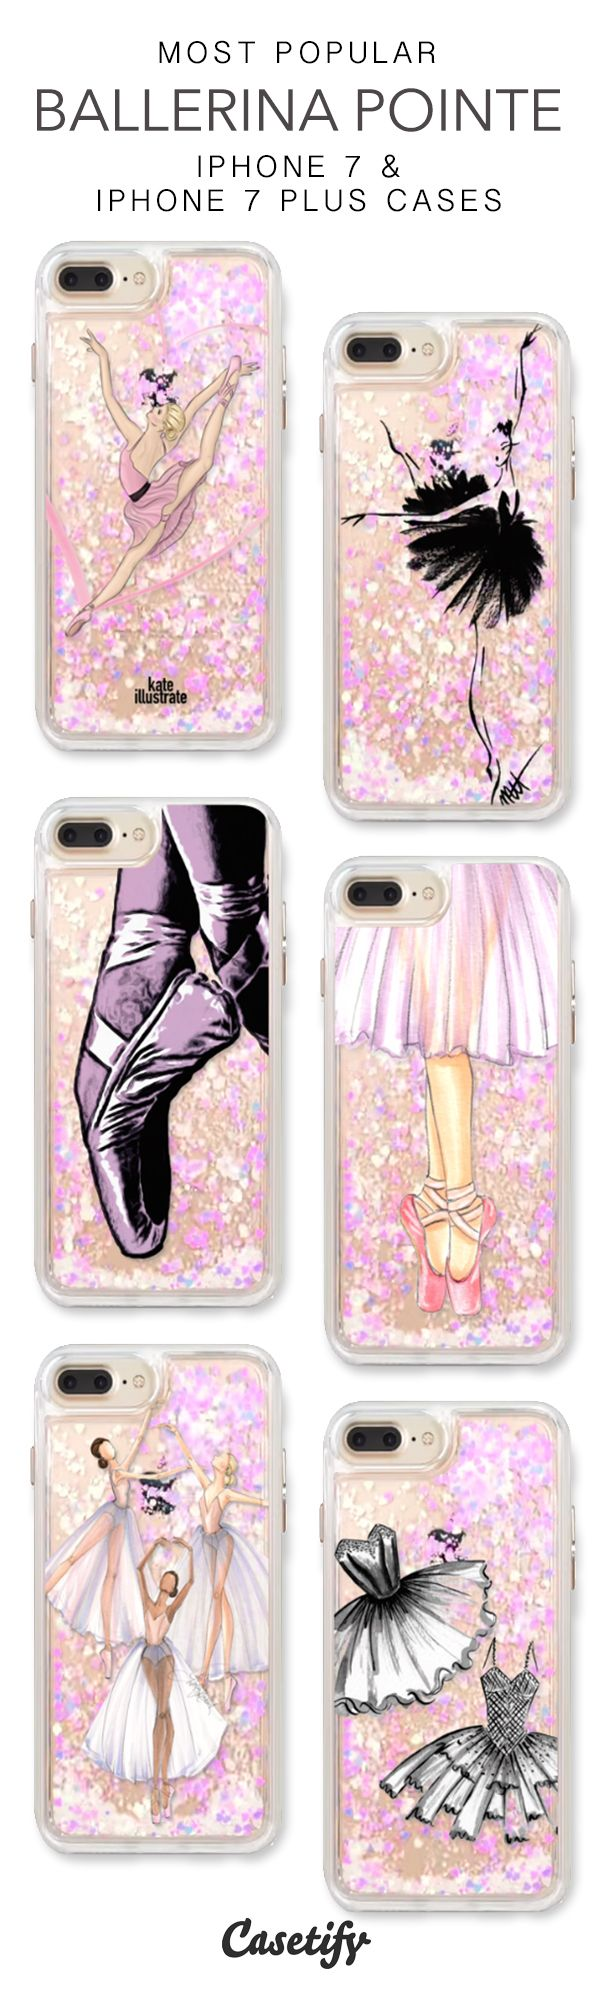 Most Popular Ballerina Pointe iPhone 7 Cases & iPhone 7 Plus Cases. More protective ballet liquid glitter iPhone case here > https://www.casetify.com/en_US/collections/iphone-7-glitter-cases#/?vc=l4eacsa7kh